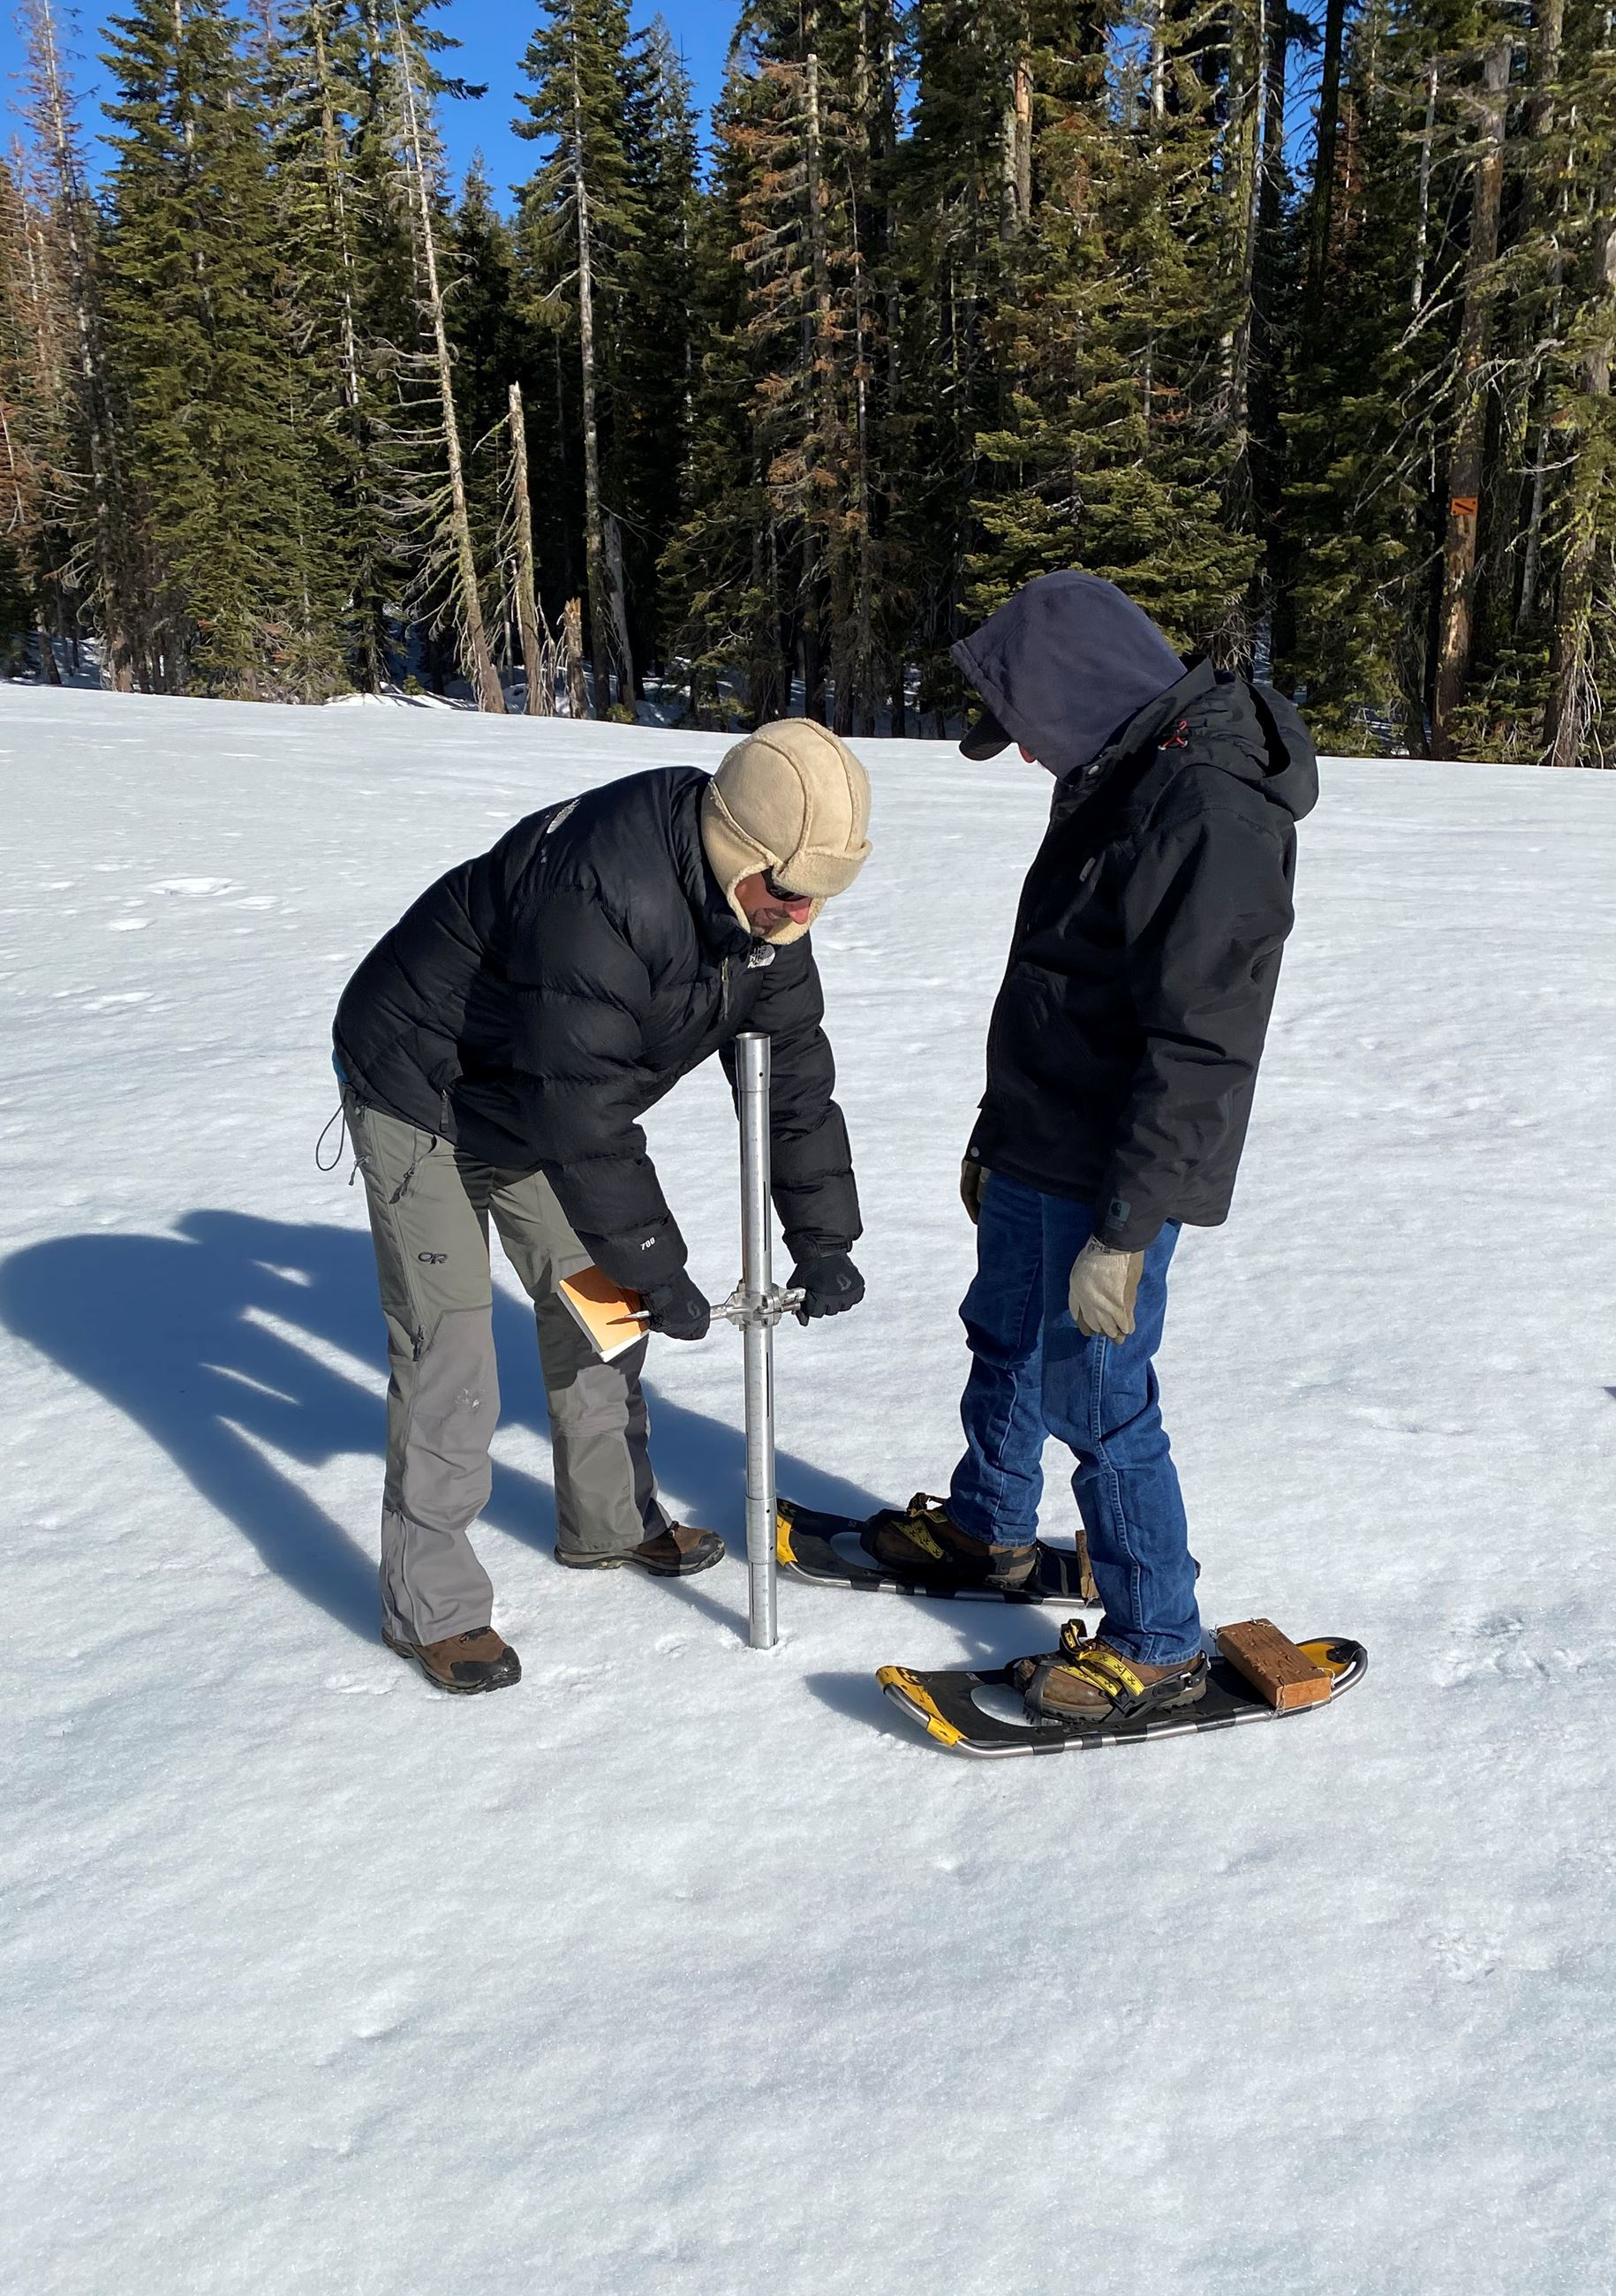 Two men take a snow sample with a metal pipe during a snow survey.